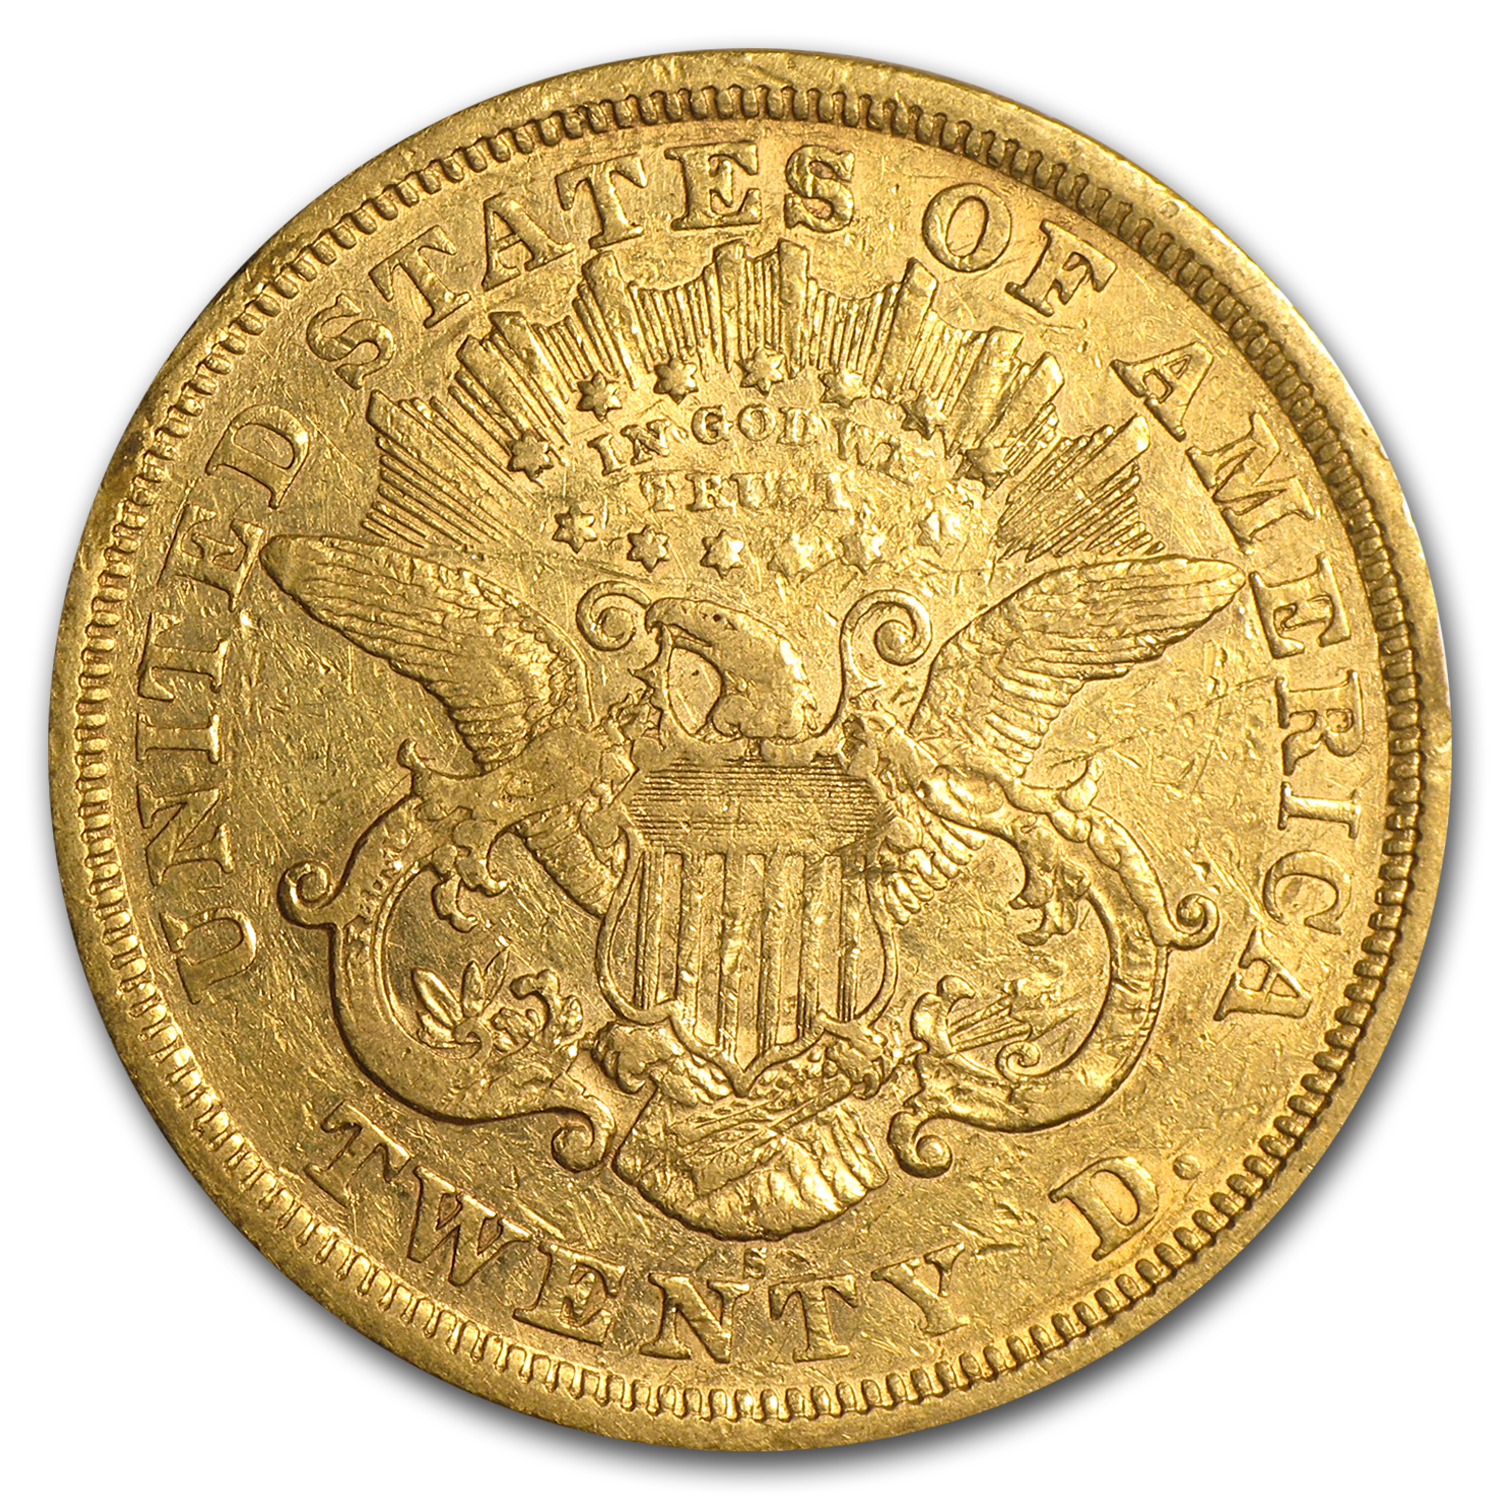 $20 Liberty Gold Double Eagle - Type 2 1866-1876 - (Cleaned)